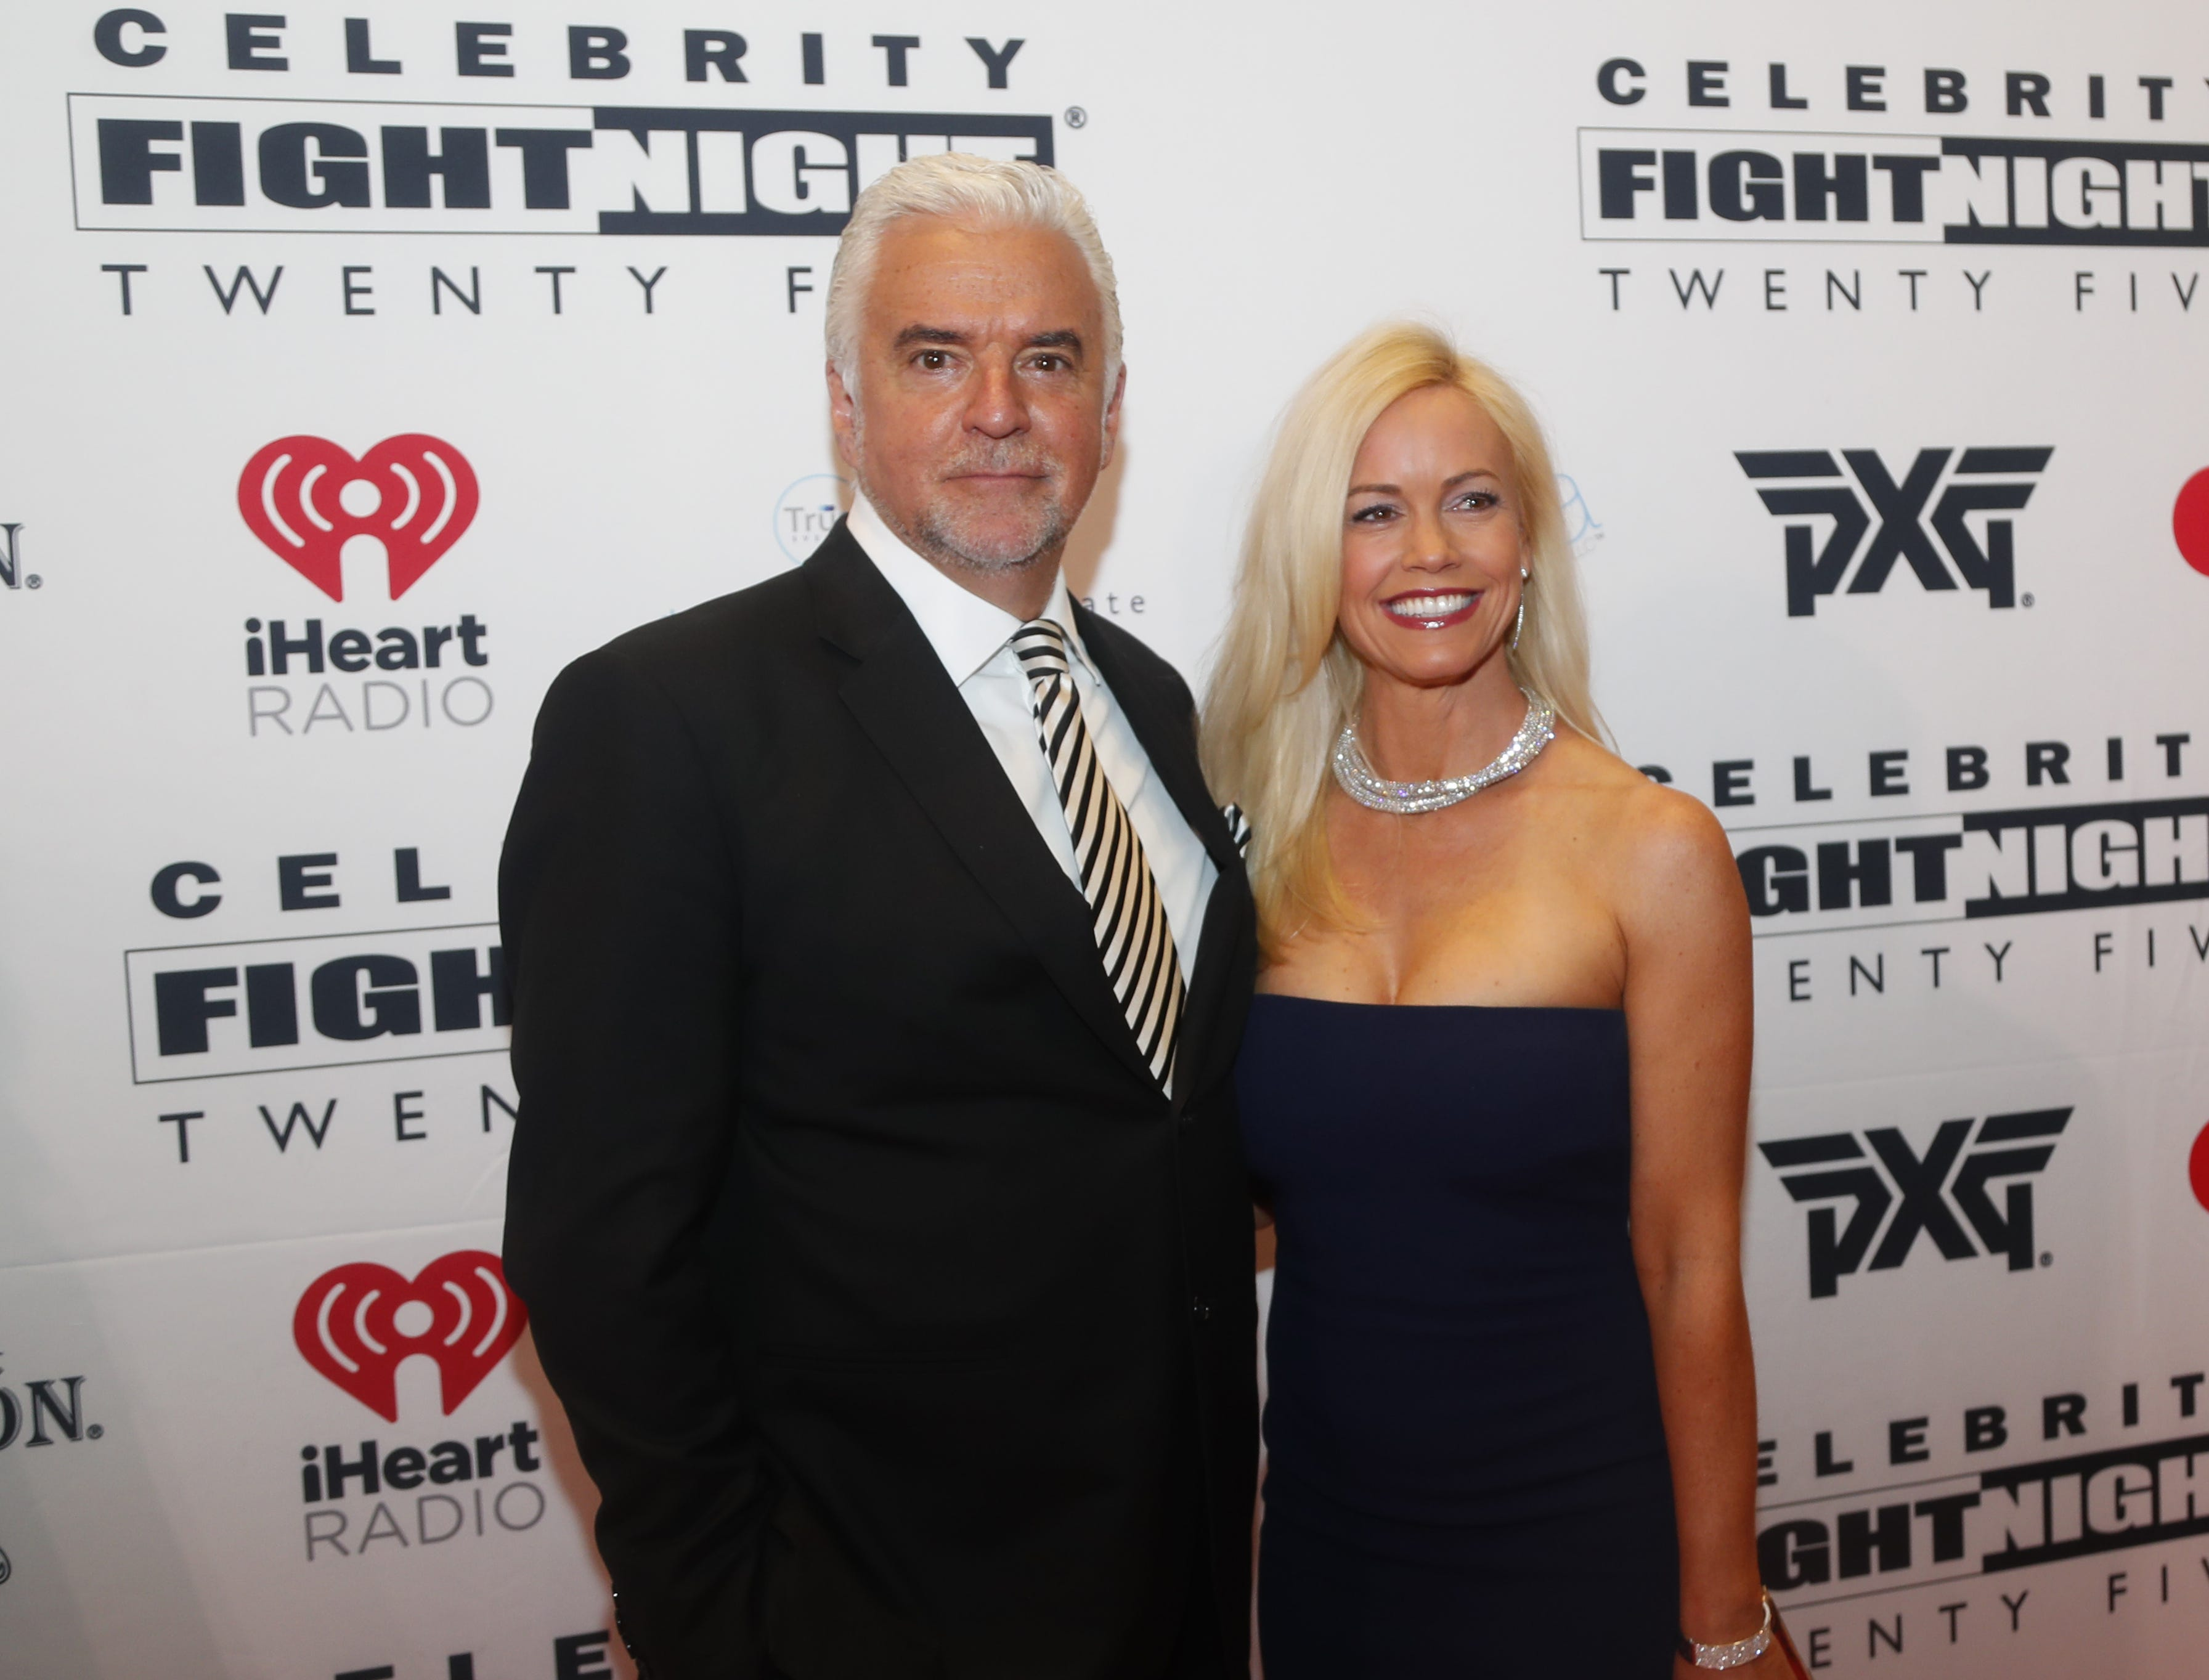 John O'Hurley poses with his date during the Celebrity Fight Night red carpet in Scottsdale, Ariz., on March 23, 2019.